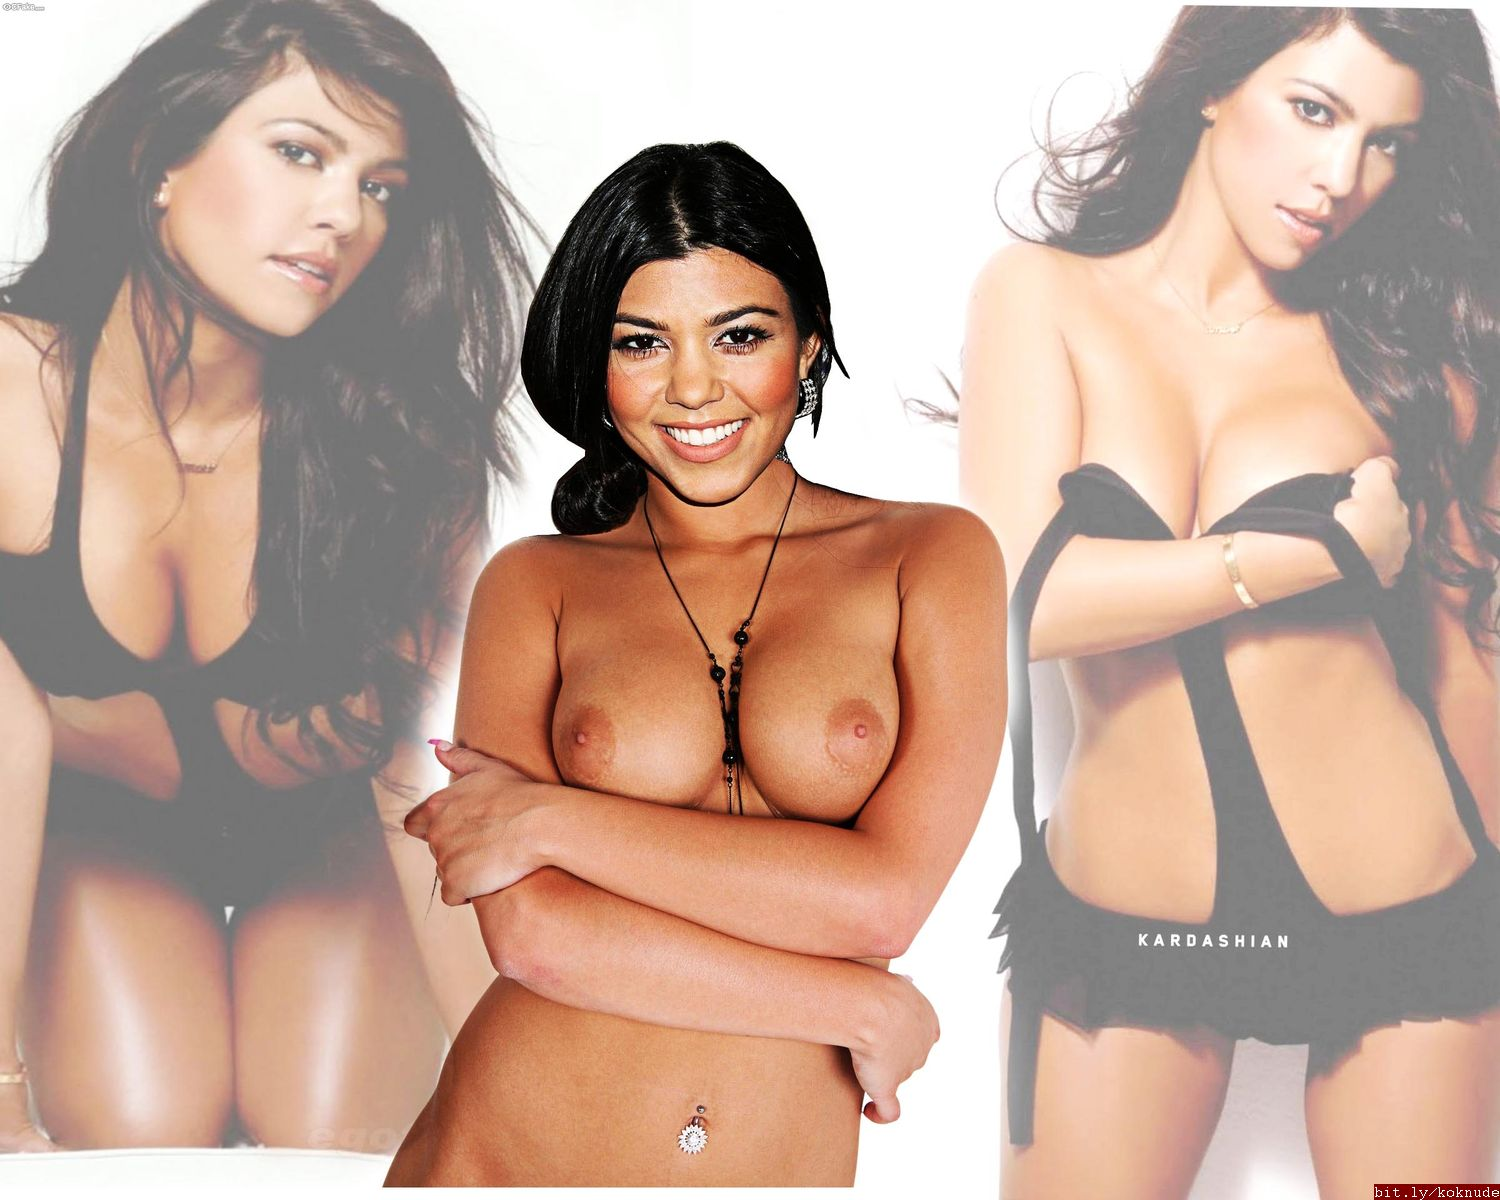 kourtney kardashian nude and desperate for attention pics